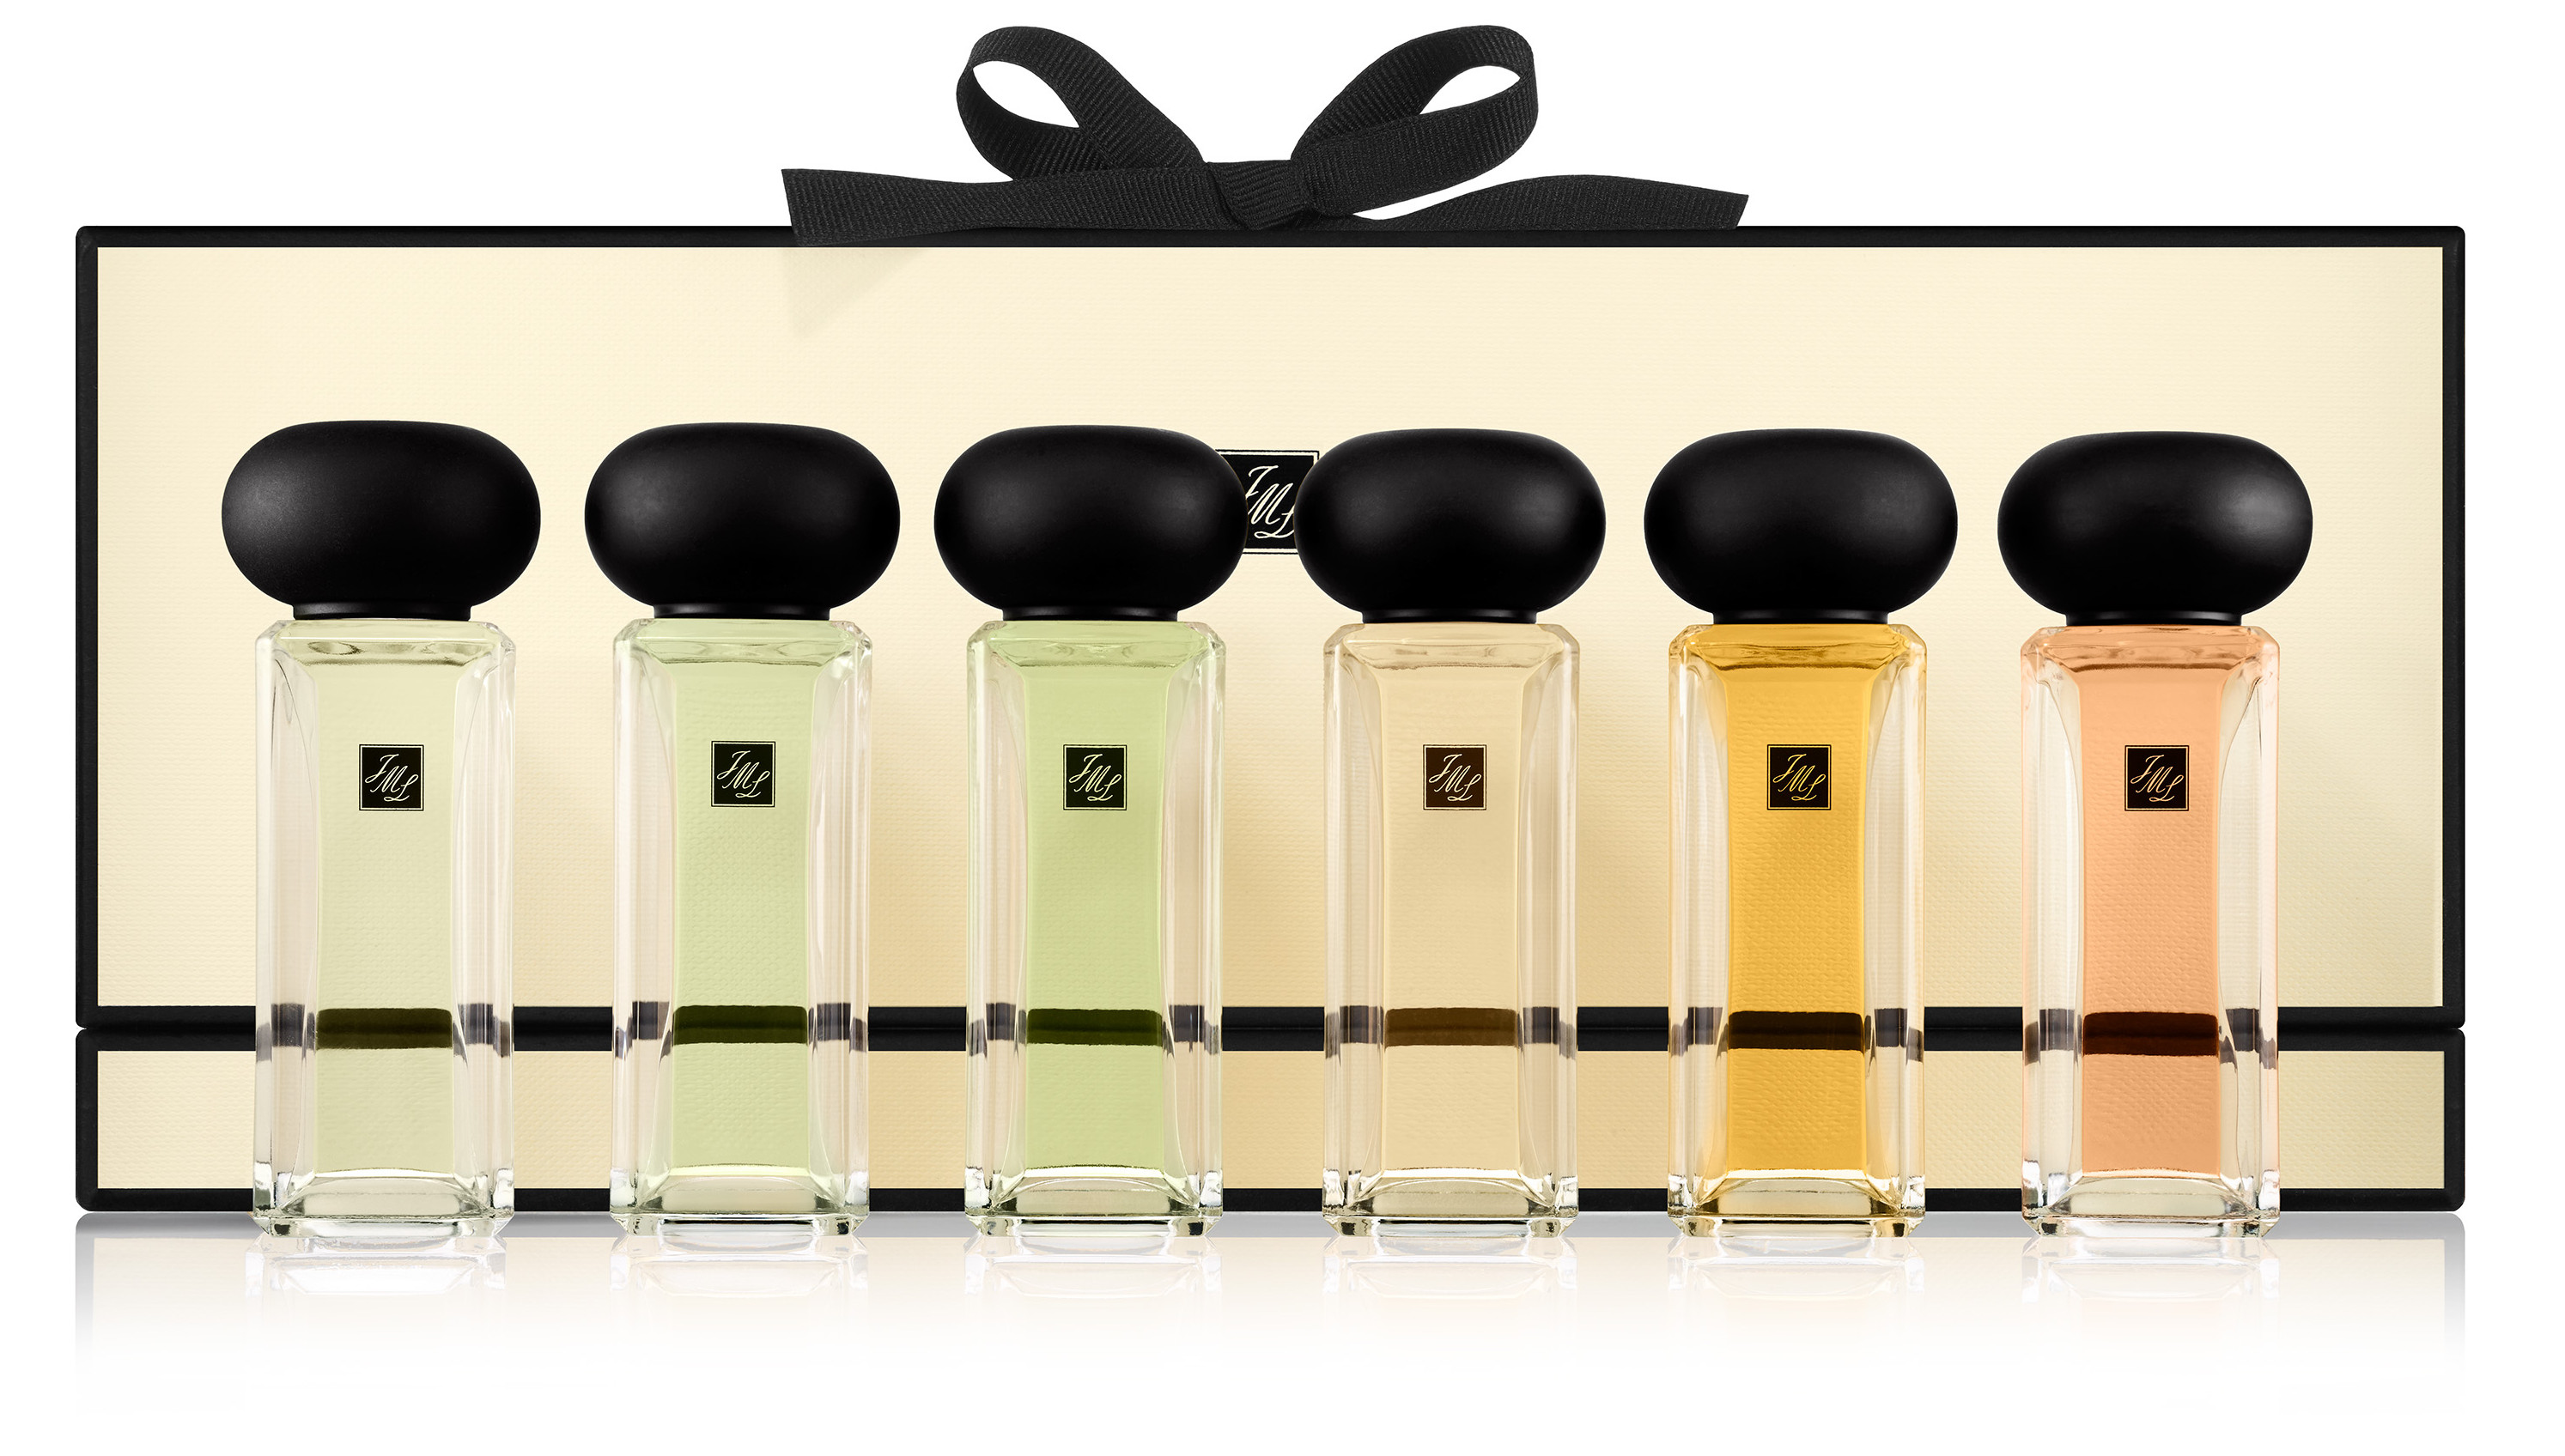 Jo Malone London Rare Teas 珍茗系列 15ML 組合( 盒子) NT 12000